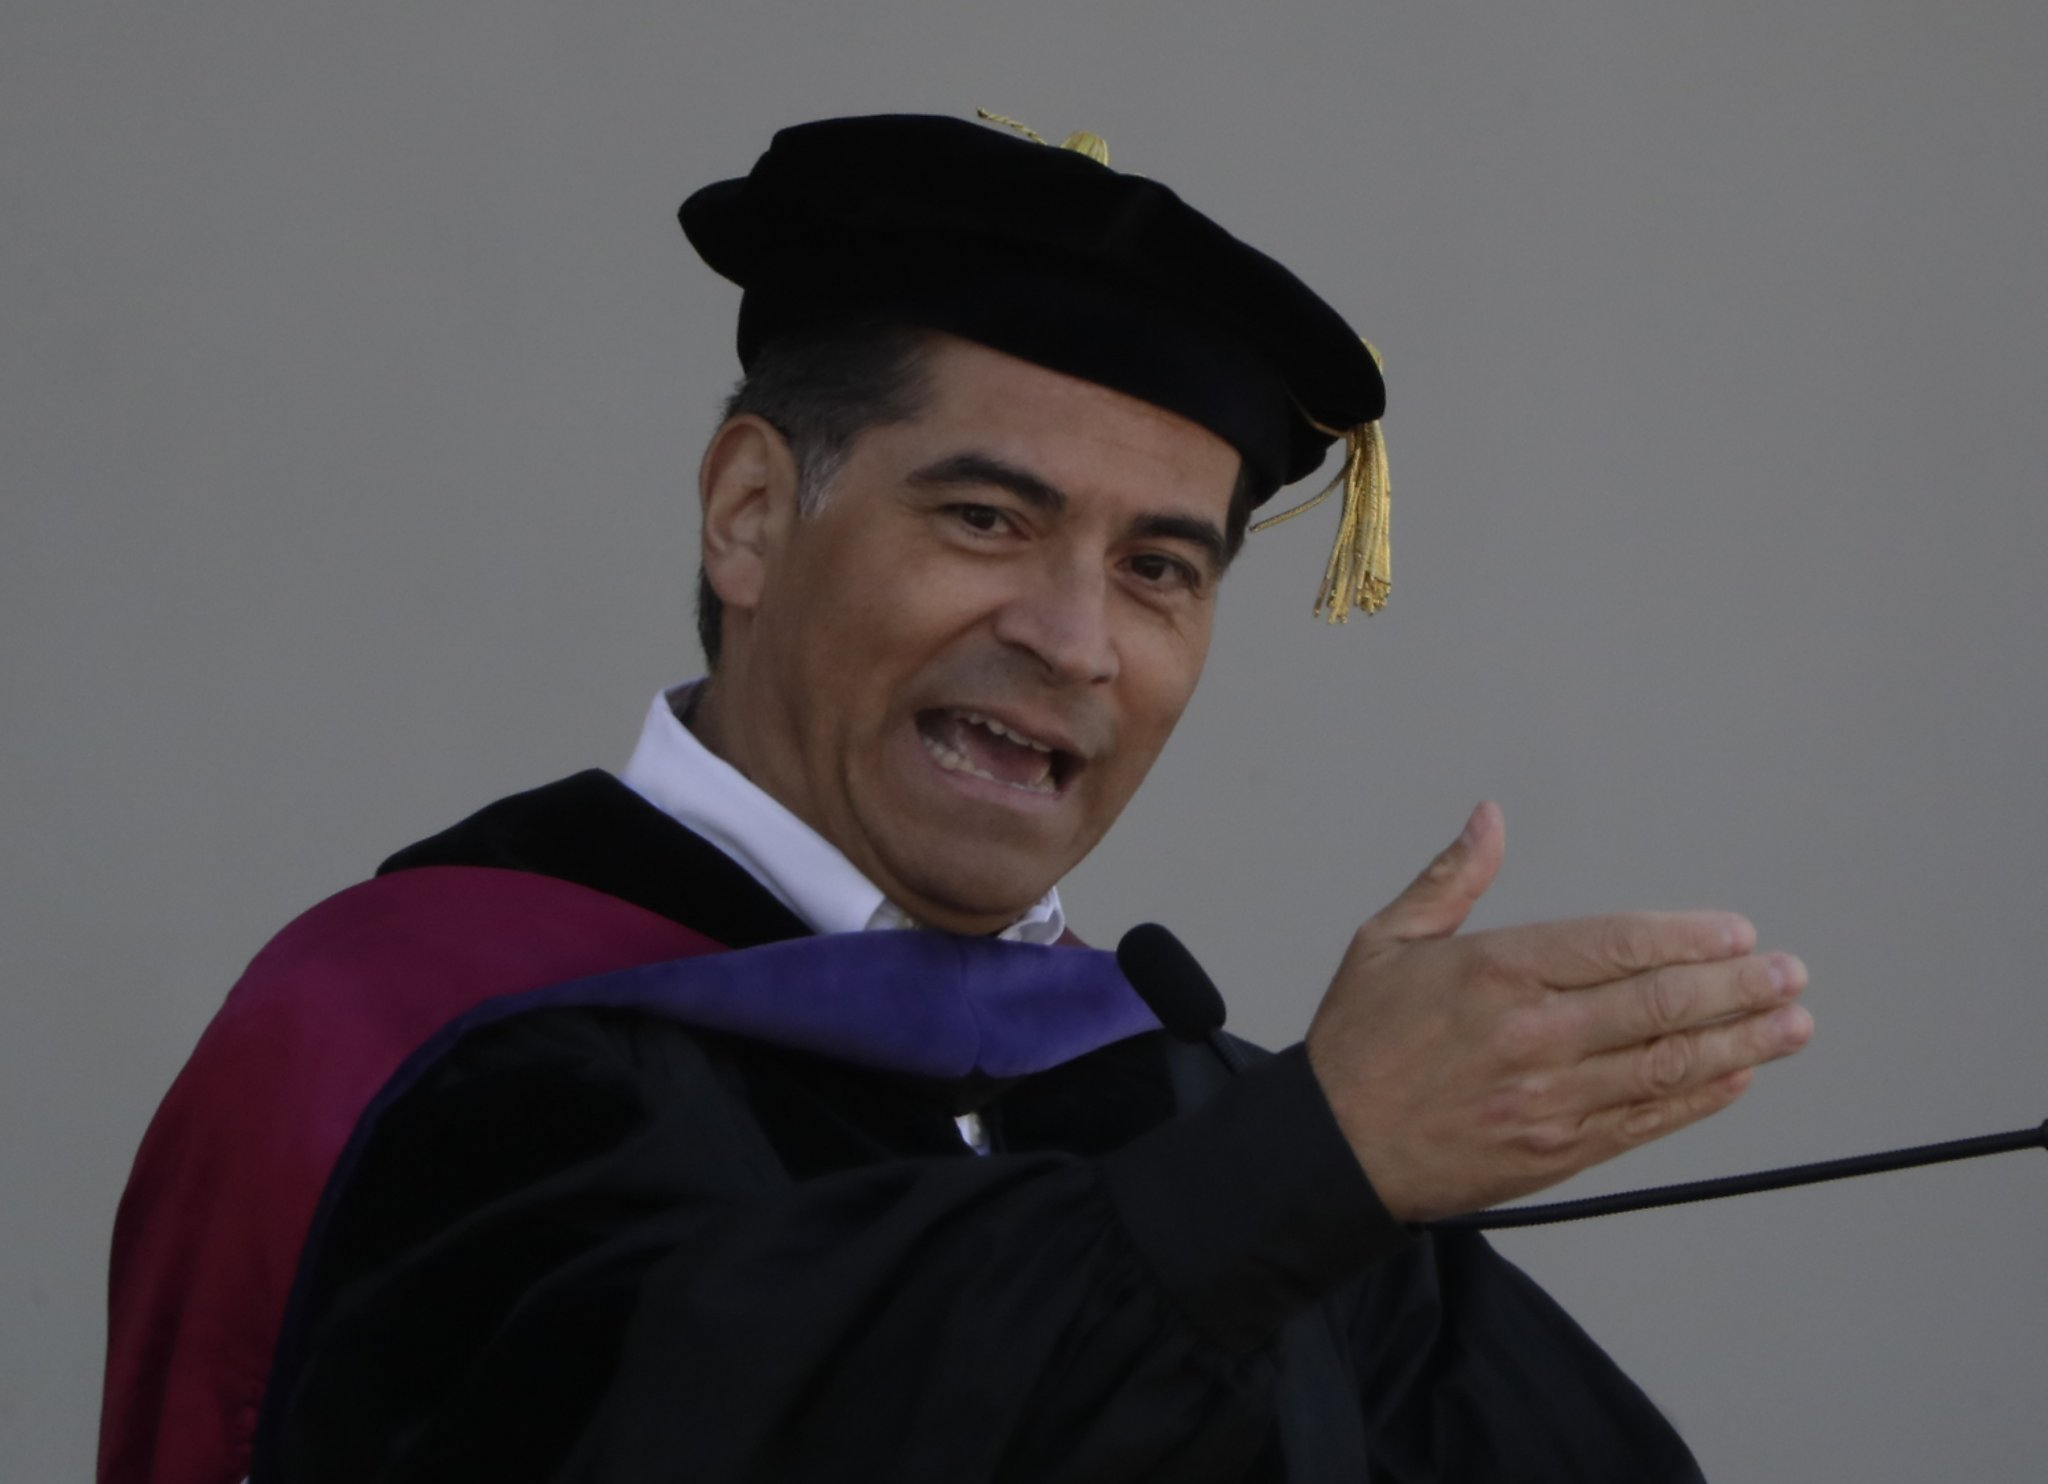 Attorney General Becerra urges Cal grads to fight for change - San Francisco Chronicle